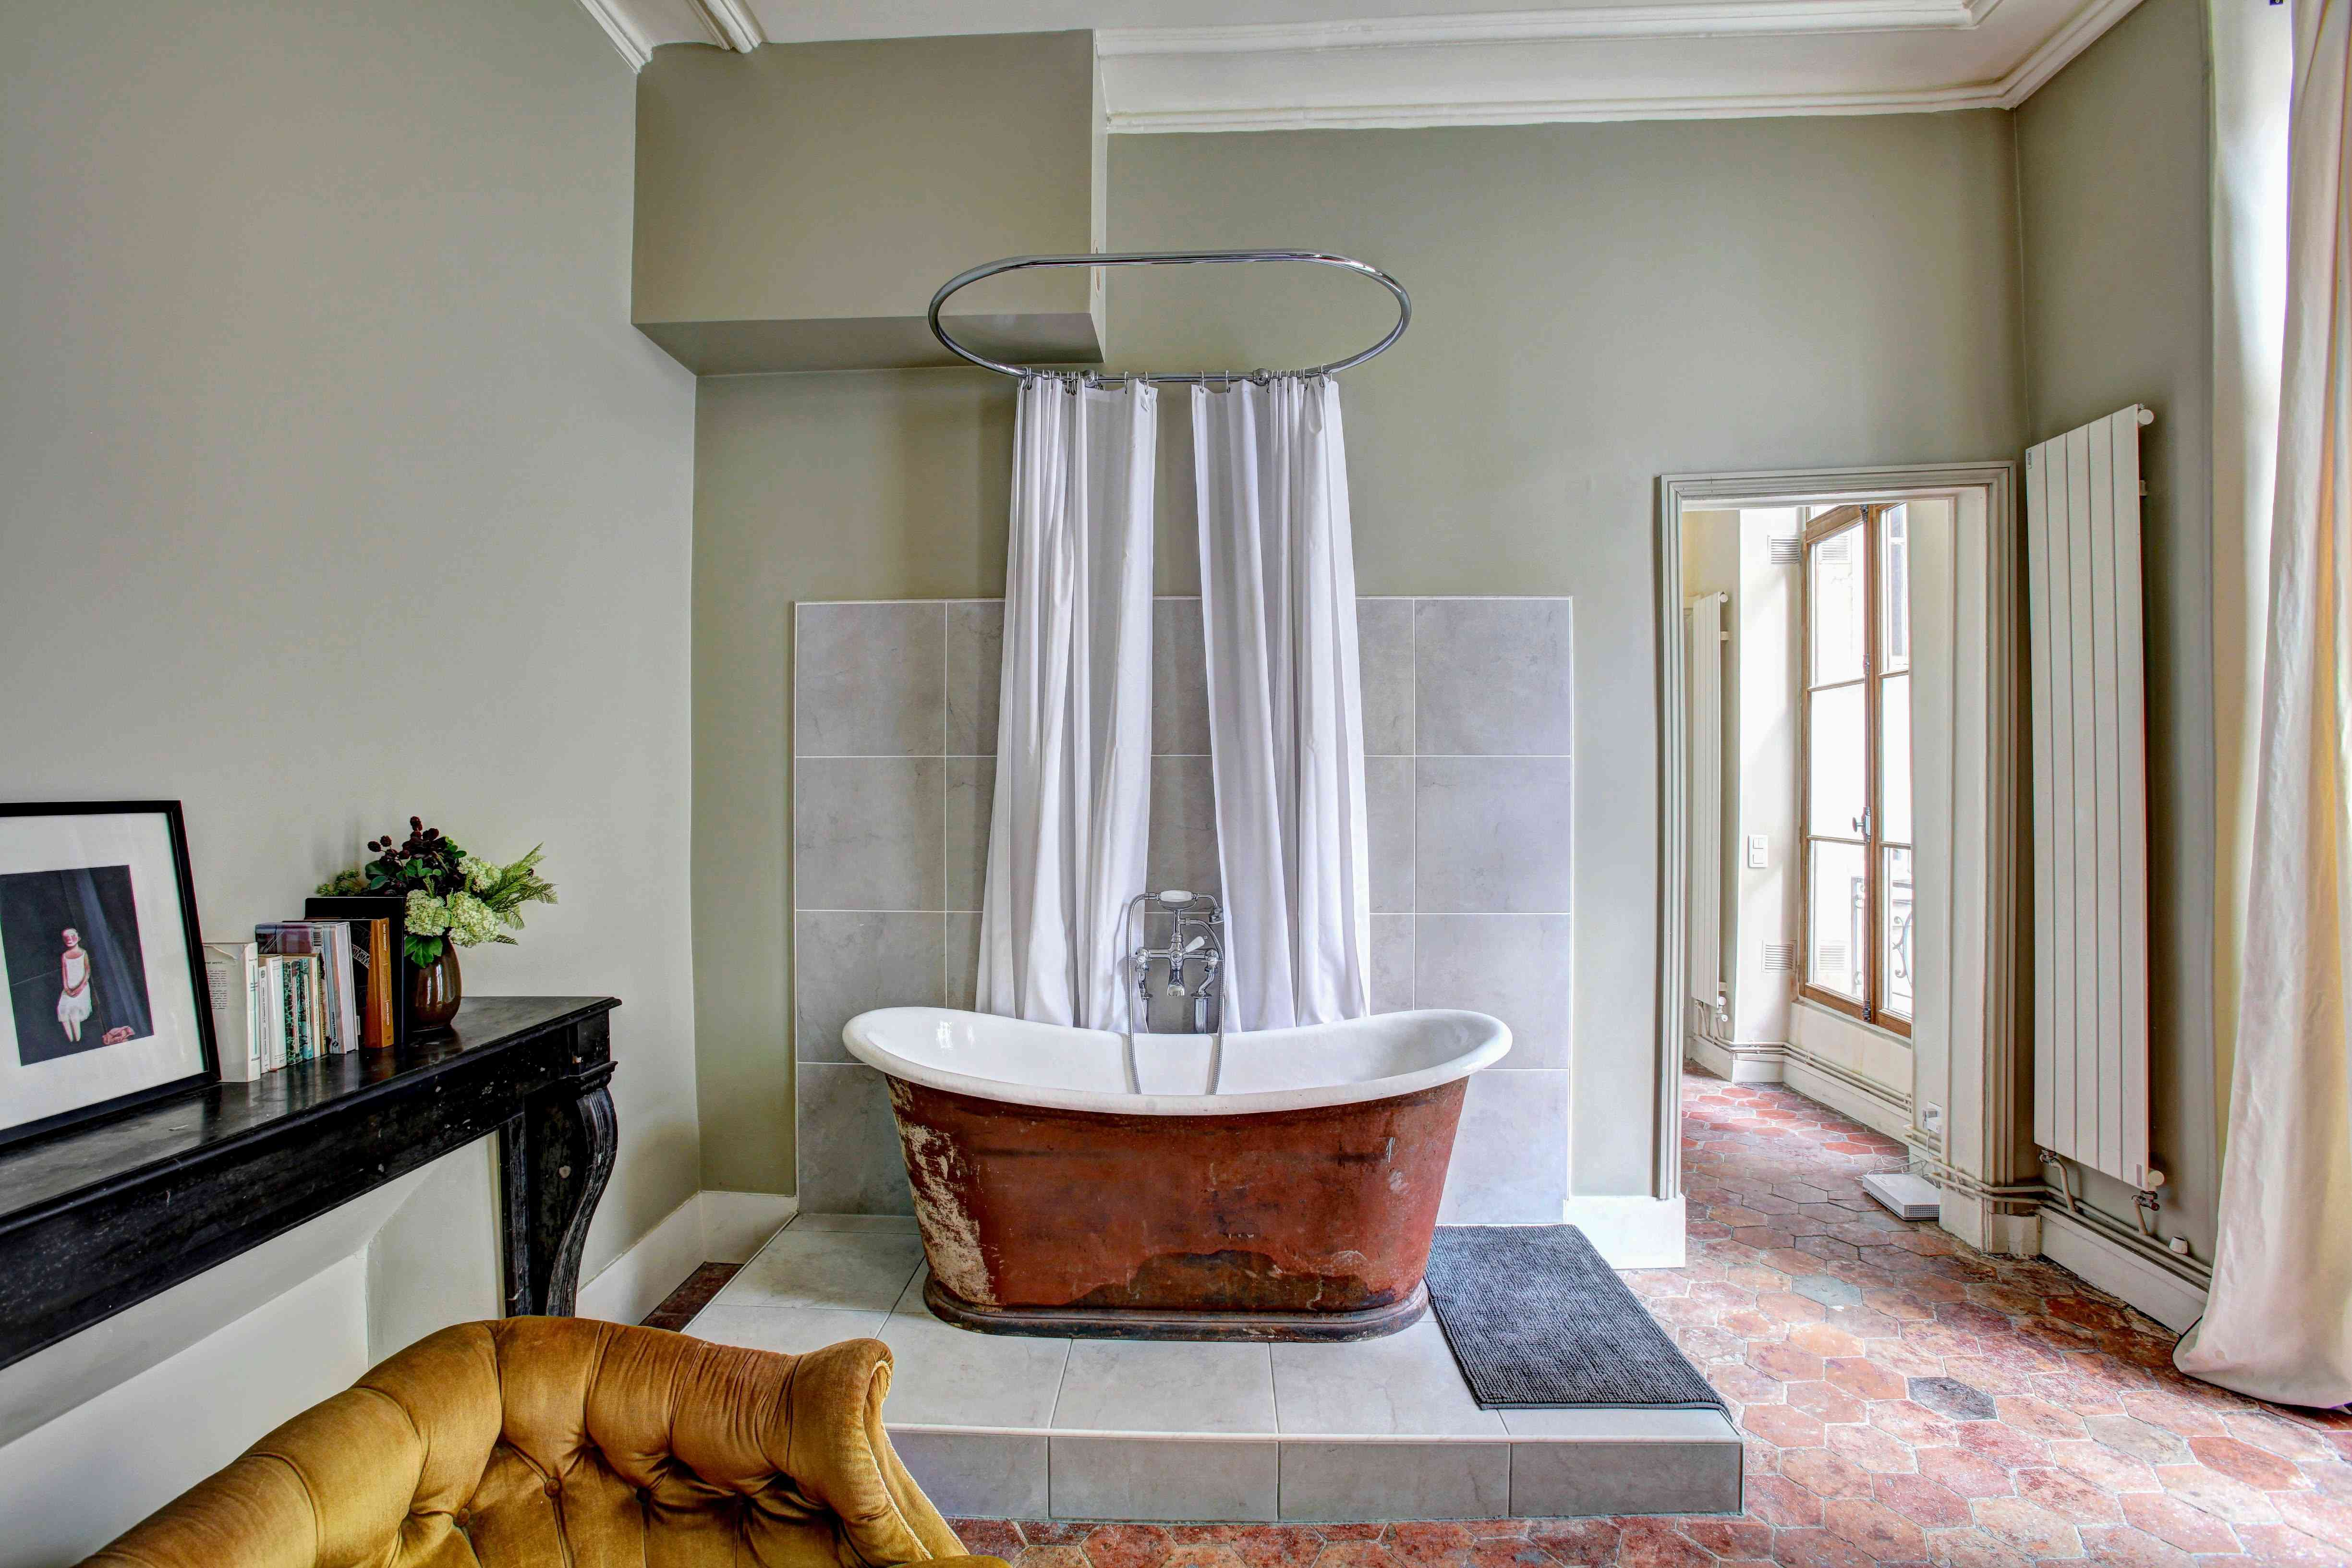 Copper bathtub in French country style room